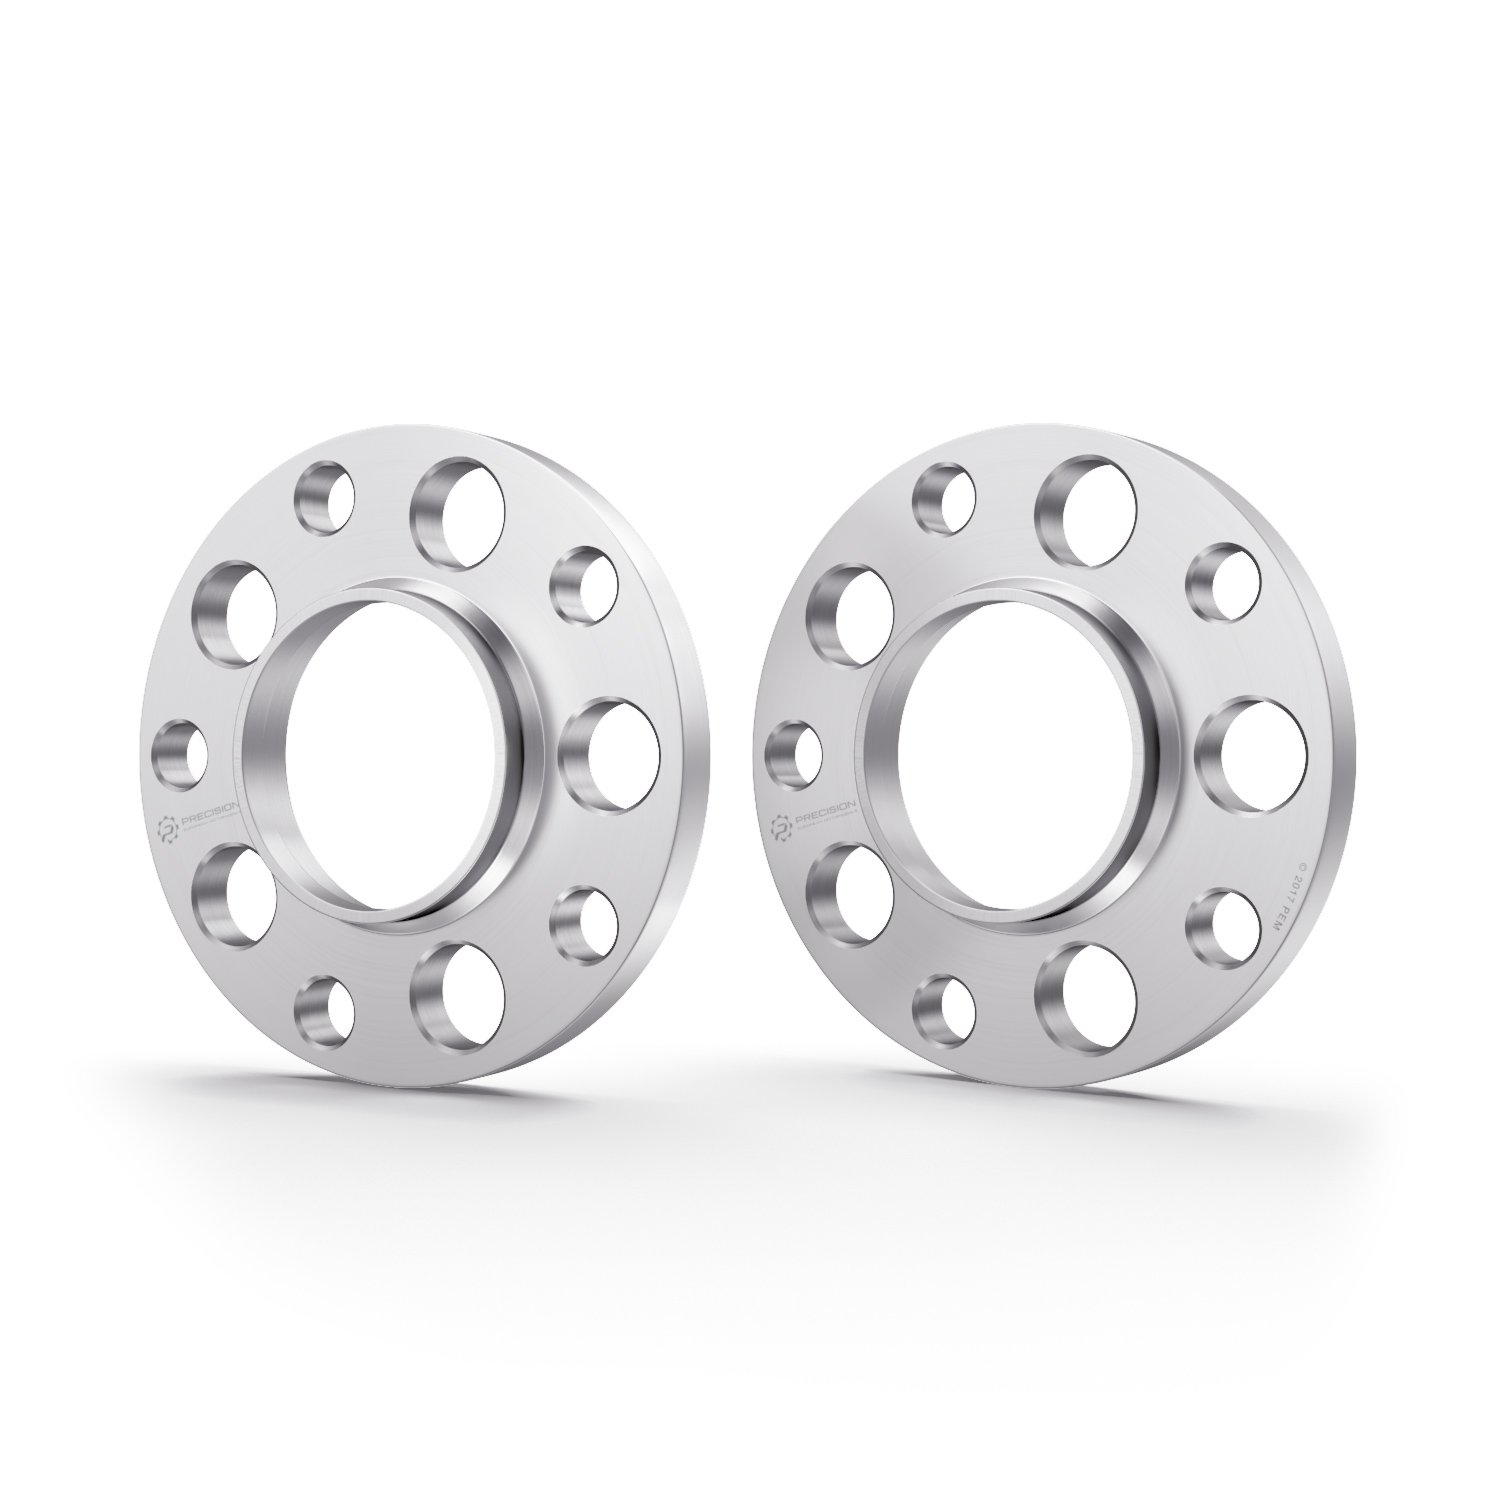 2pc 12mm 1 2 5x100 Hubcentric Wheel Spacers For Subaru Outback Torque Converter Scion Frs Fr S Brz Baja Forester Wrx Impreza Legacy Saab 9 2x 561 Bore Automotive